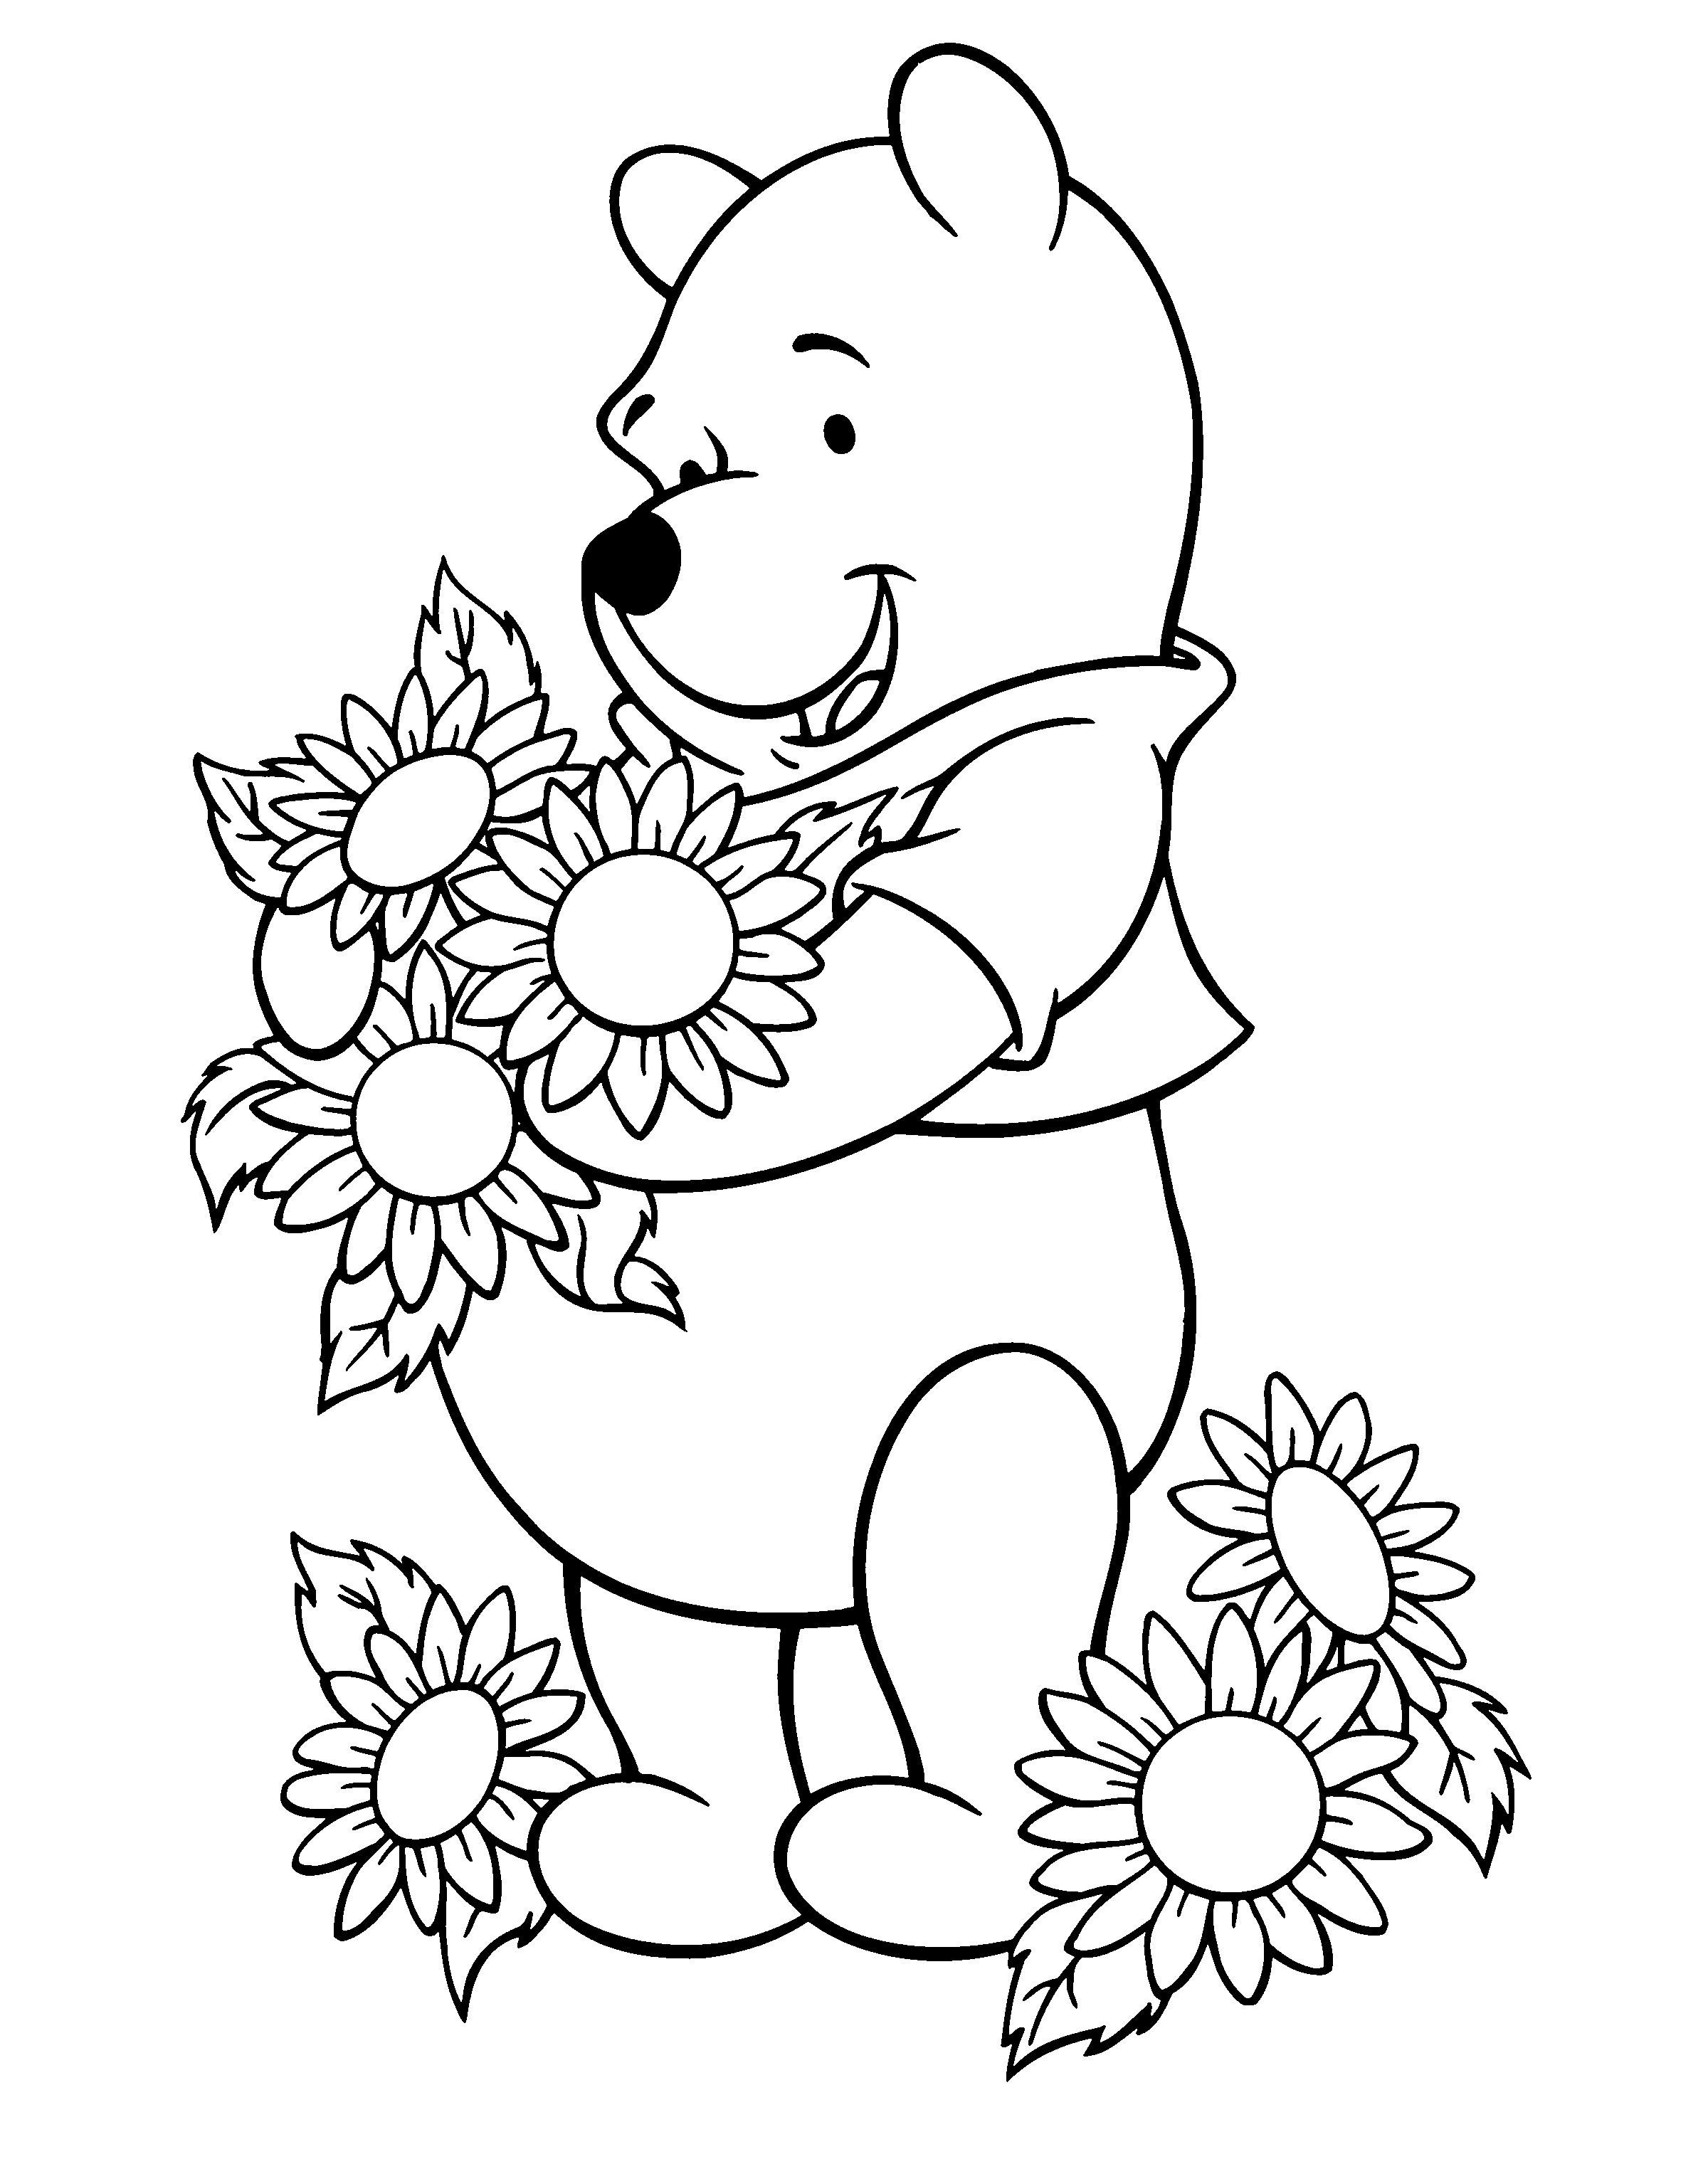 Flower Coloring Pages Download 5i - Save it to your computer